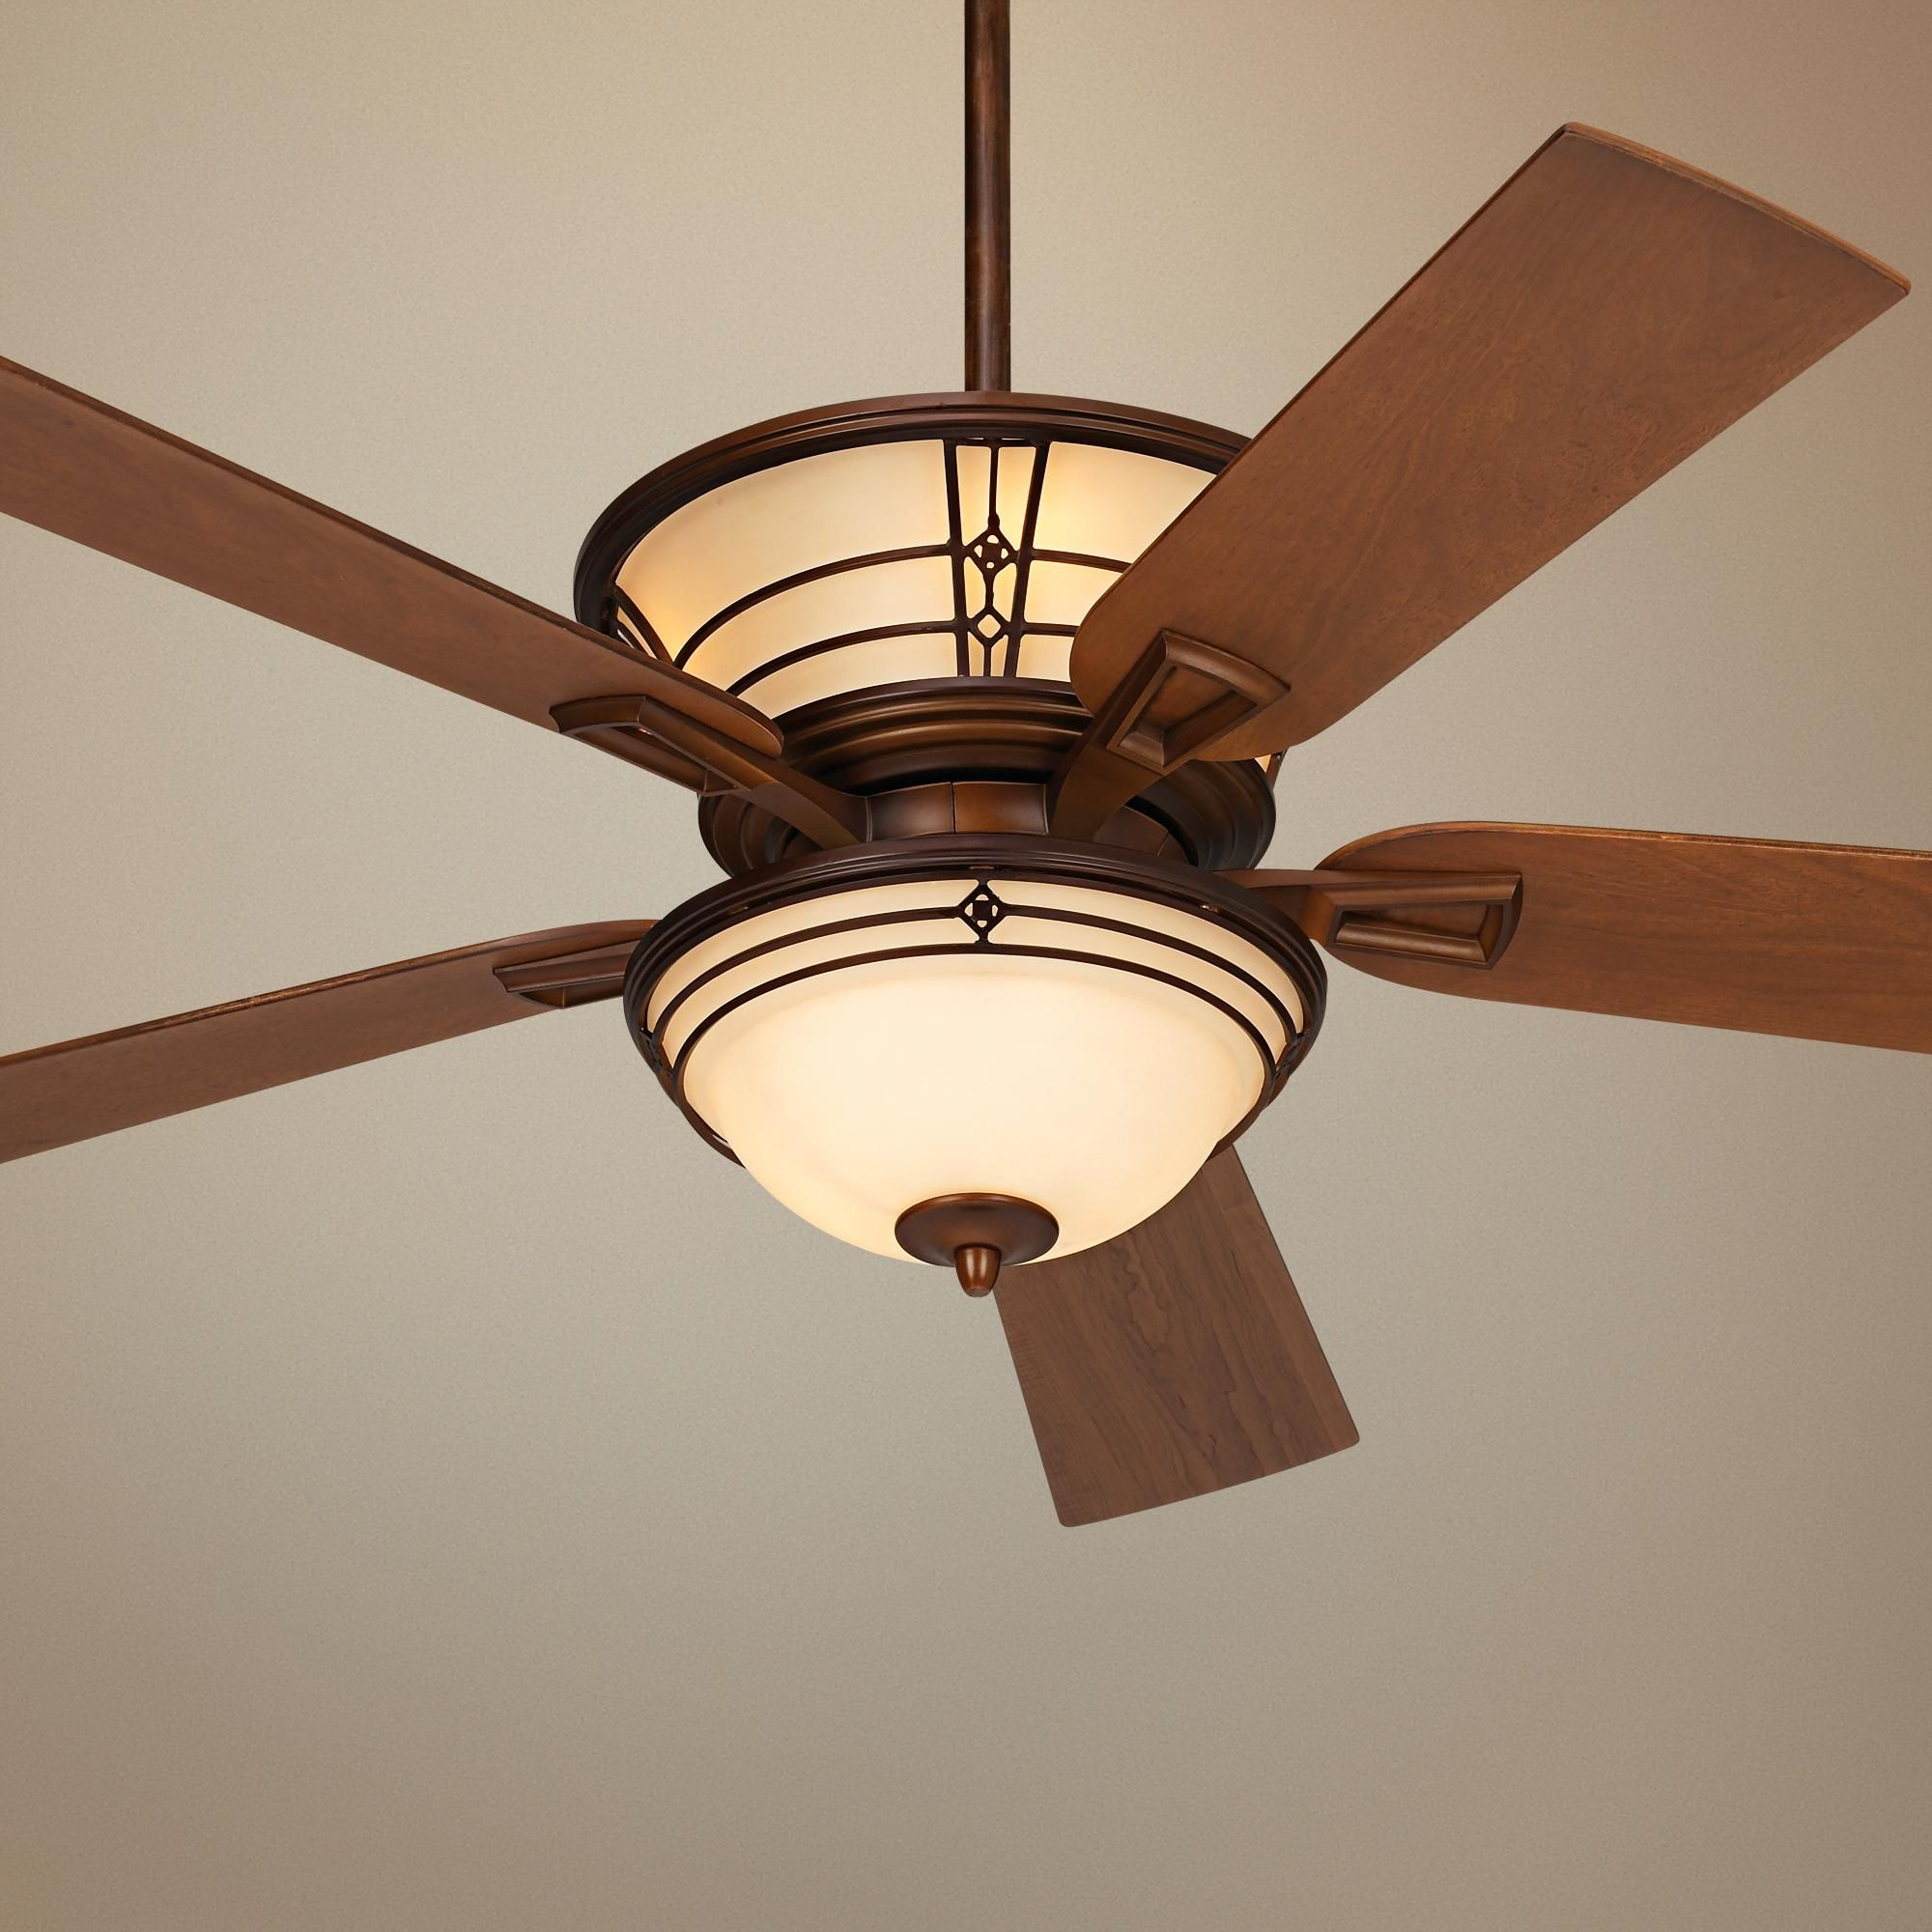 """52"""" Fairmont Aged Bronze Ceiling Fan Like this one has great"""